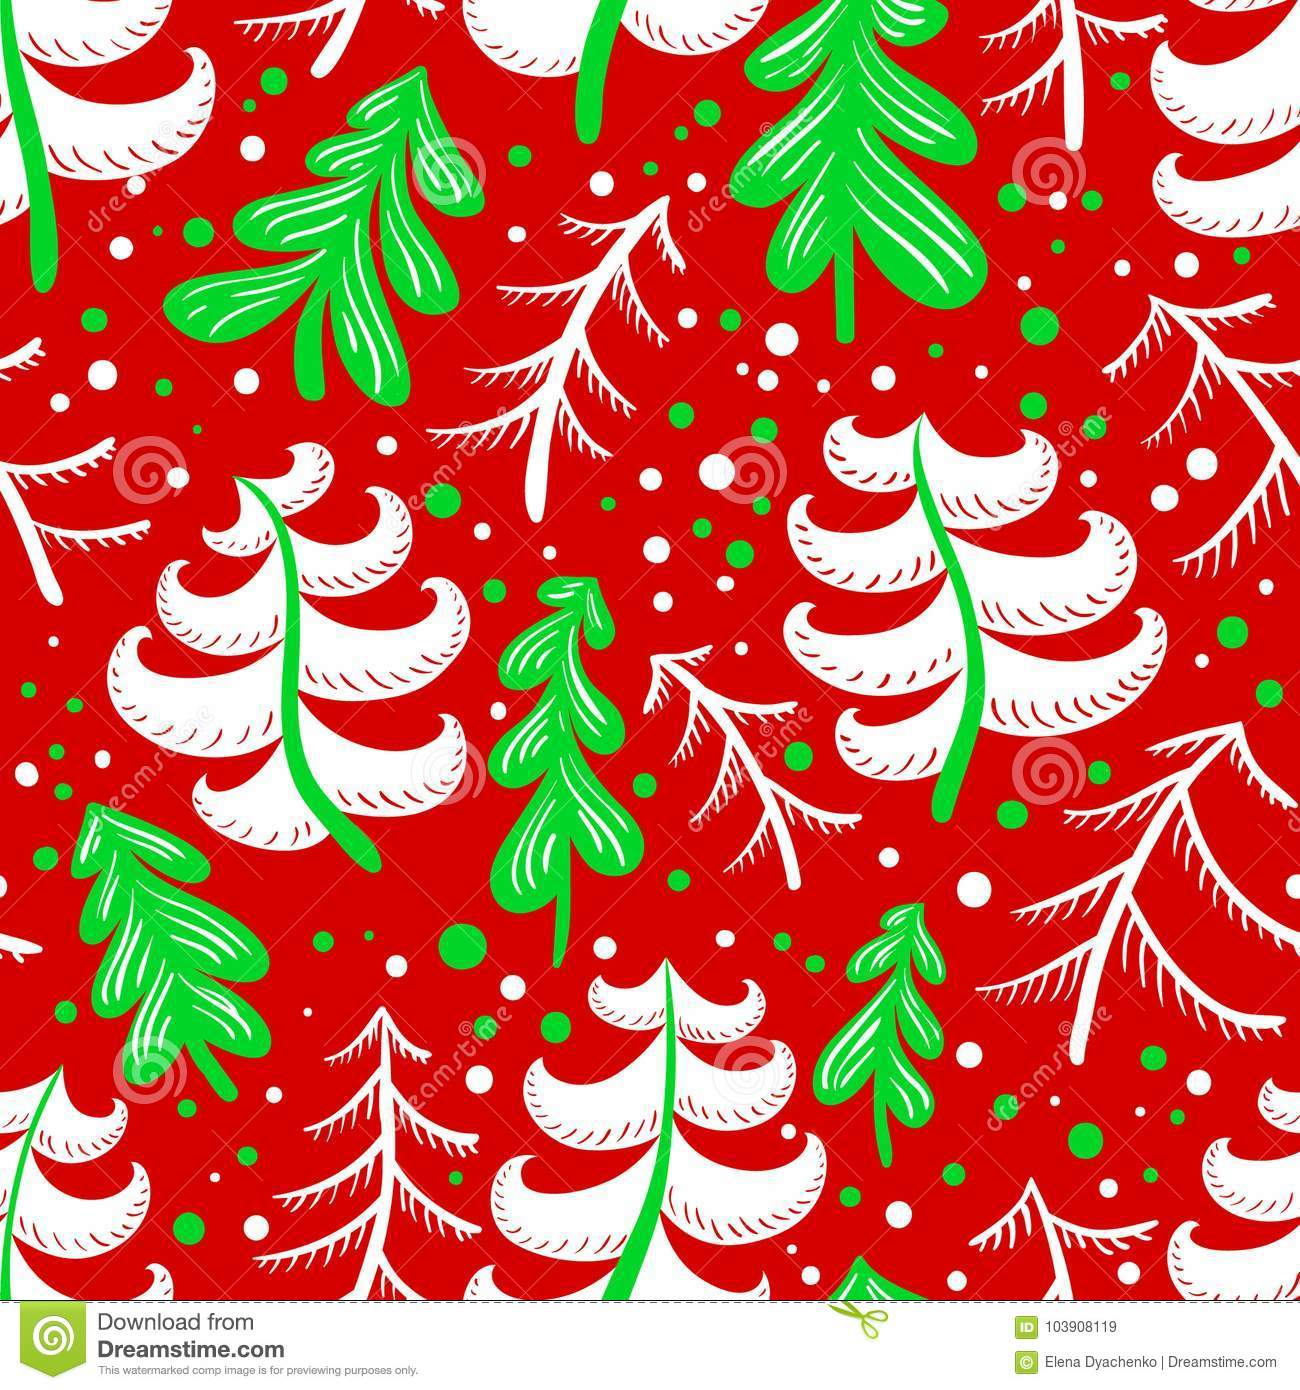 christmas and winter seamless pattern in red and green colors b - Why Are Red And Green Christmas Colors